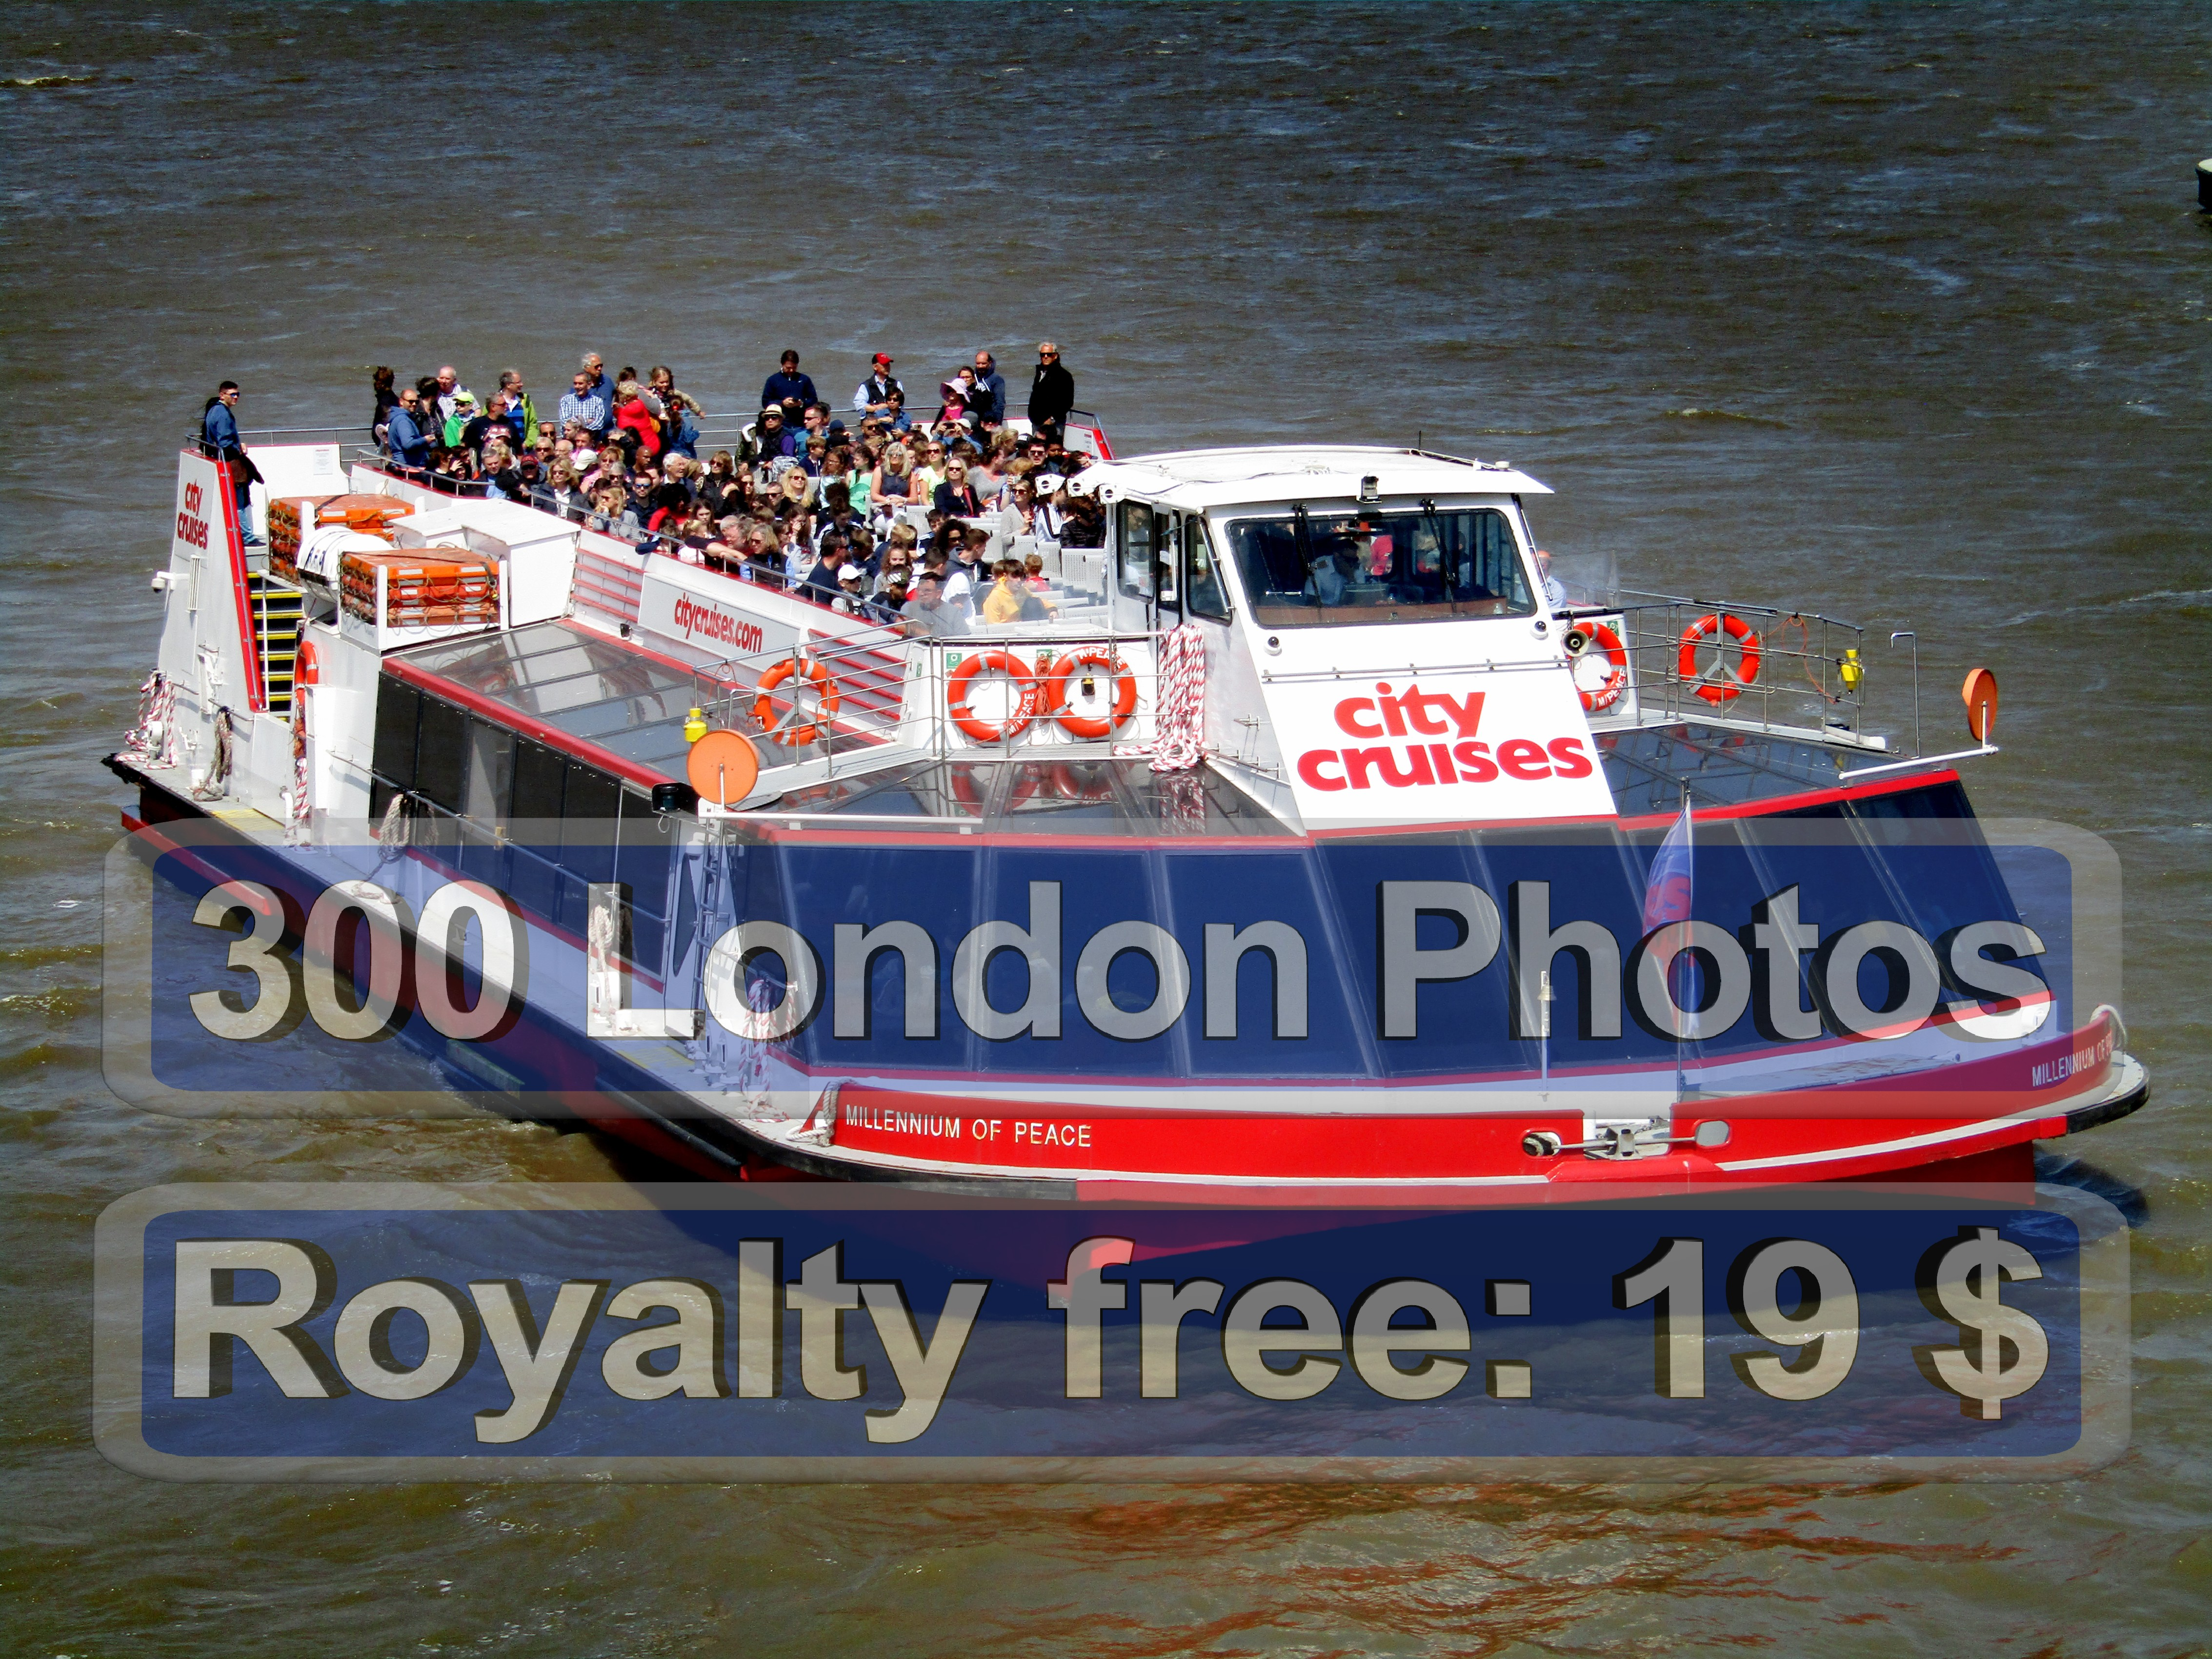 London Photo Events